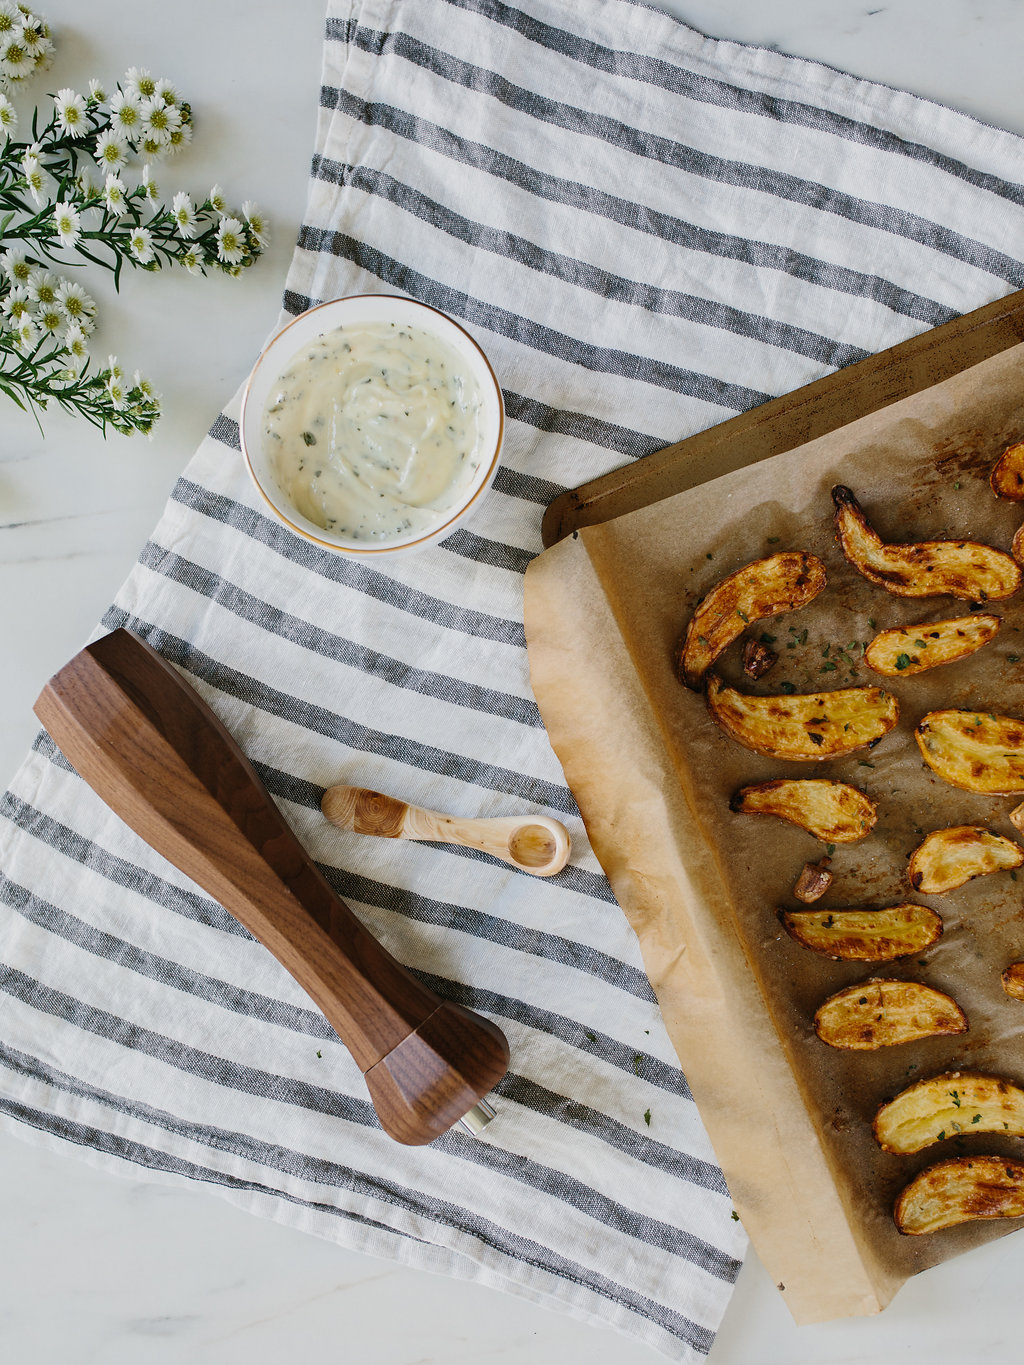 Roasted Fingerling Potatoes in a baking tray next to a dip